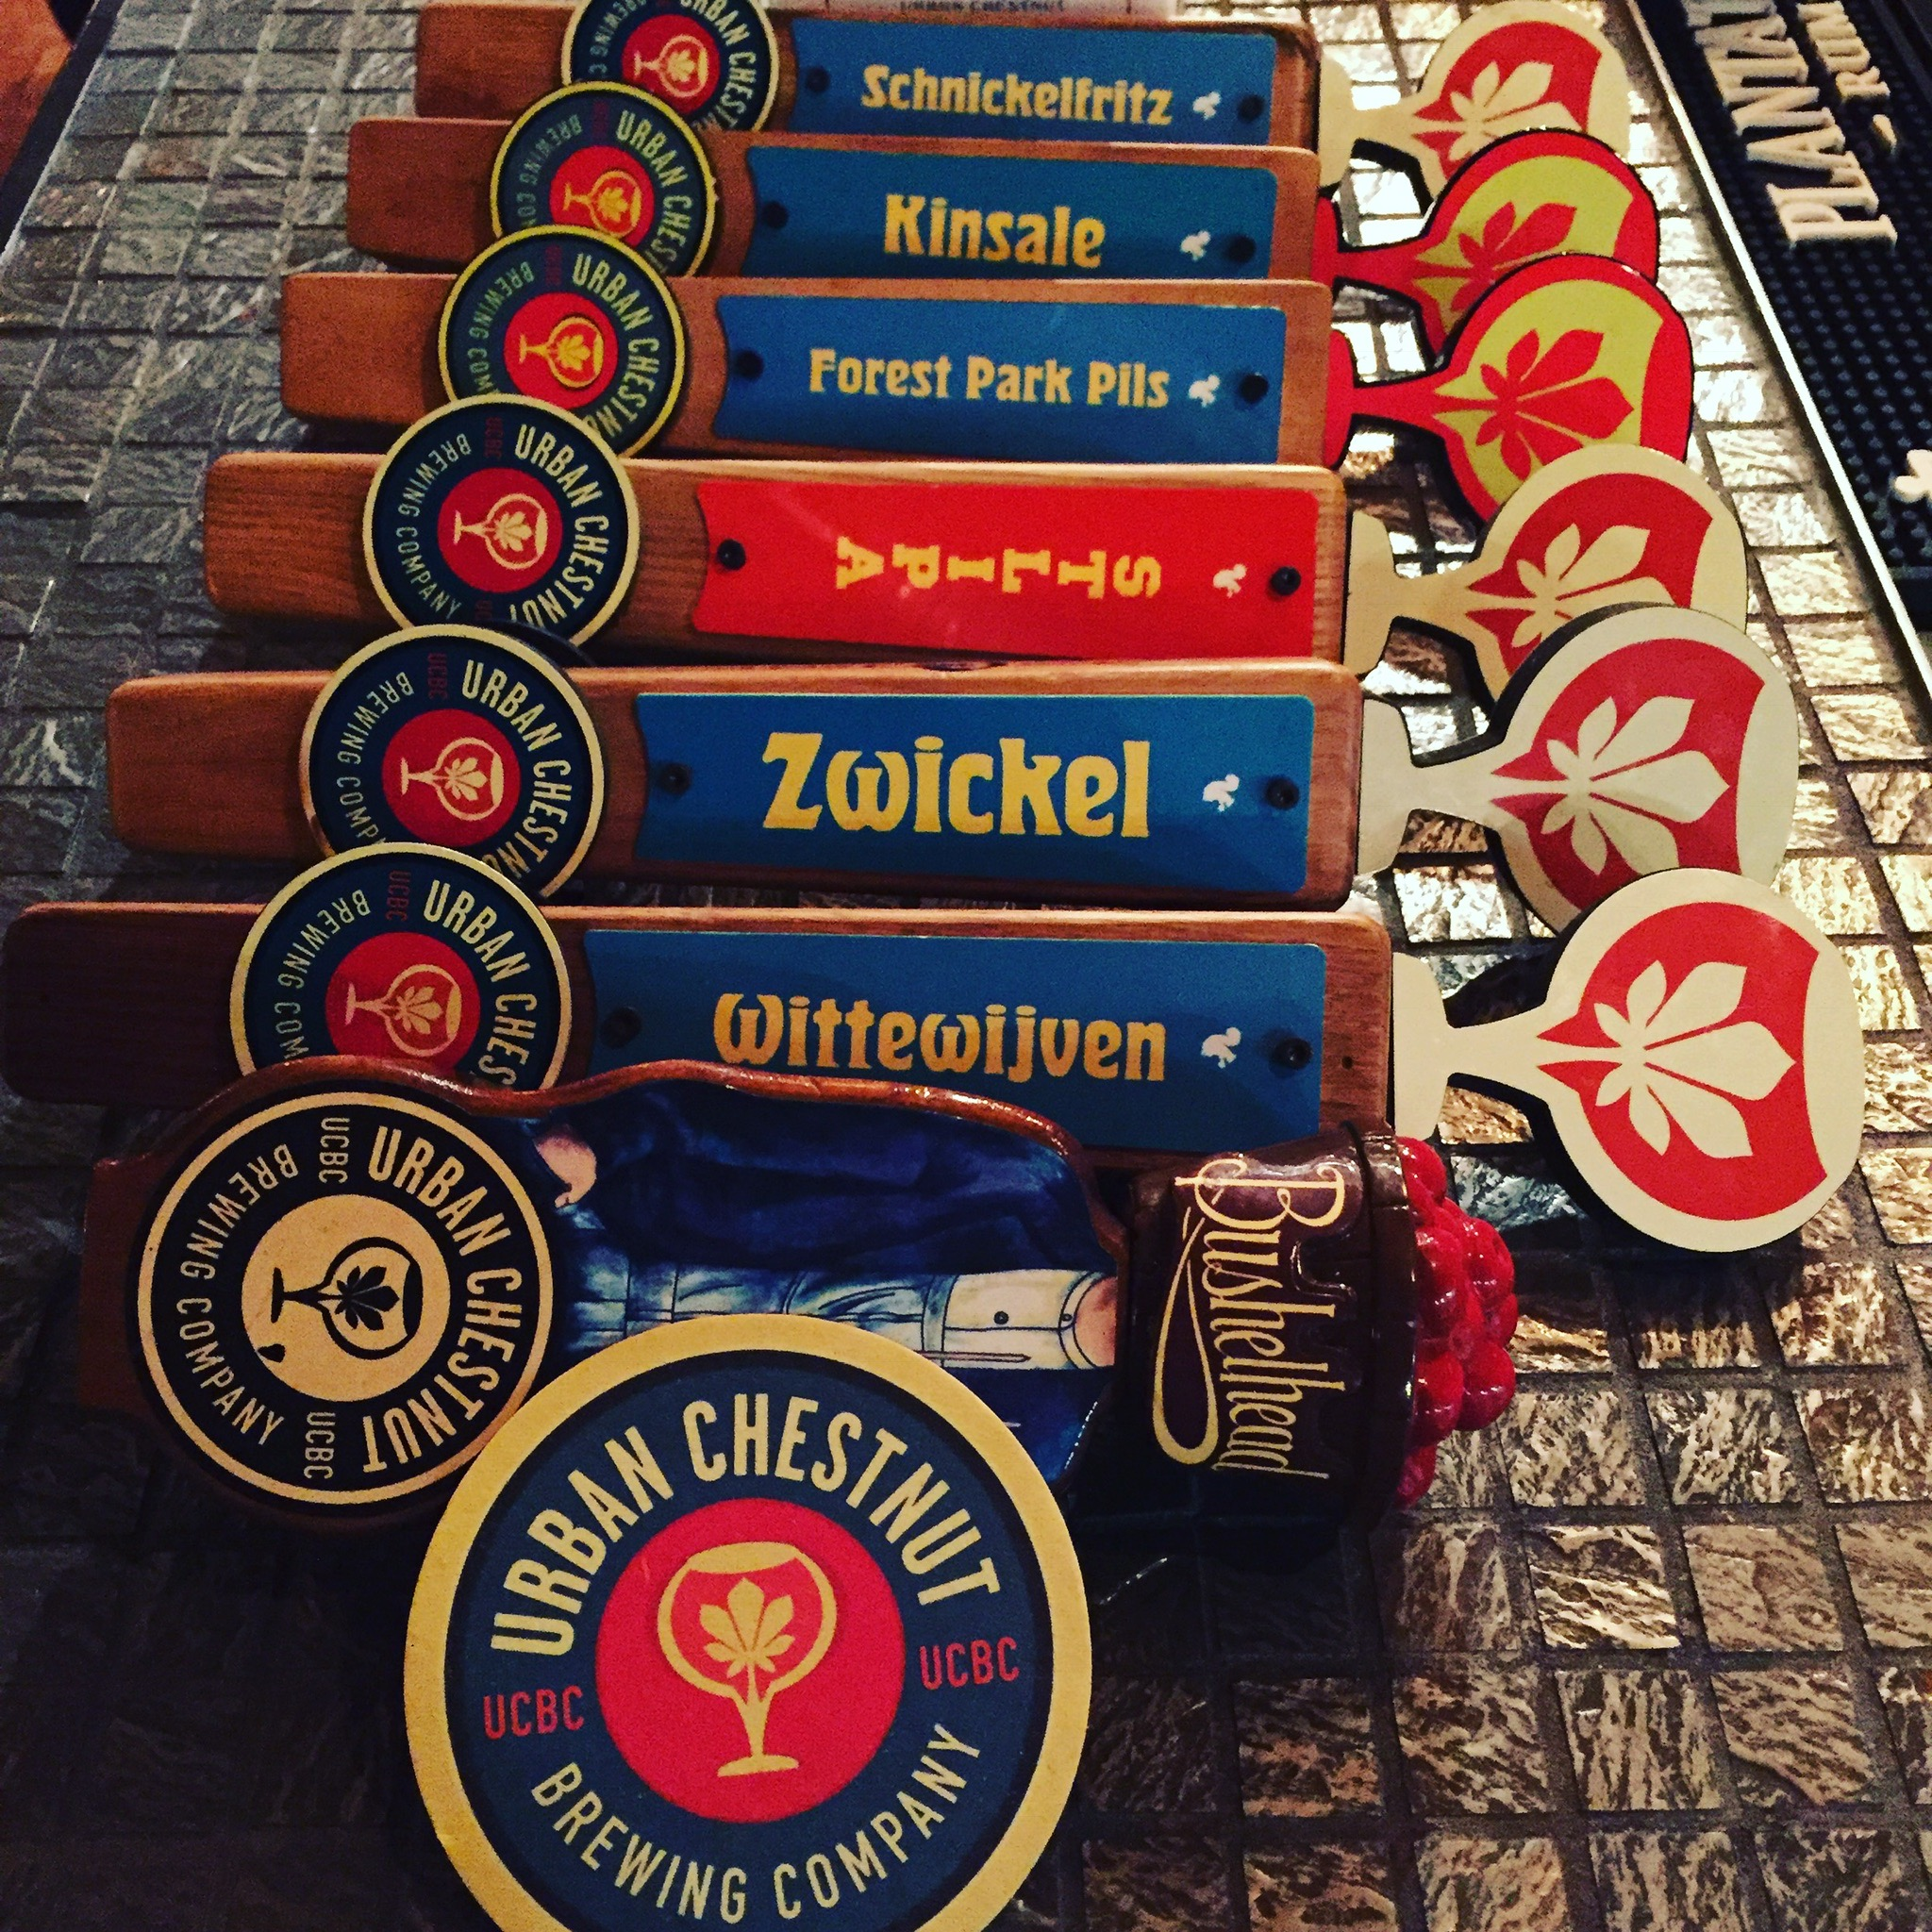 UCBC Tap Takeover